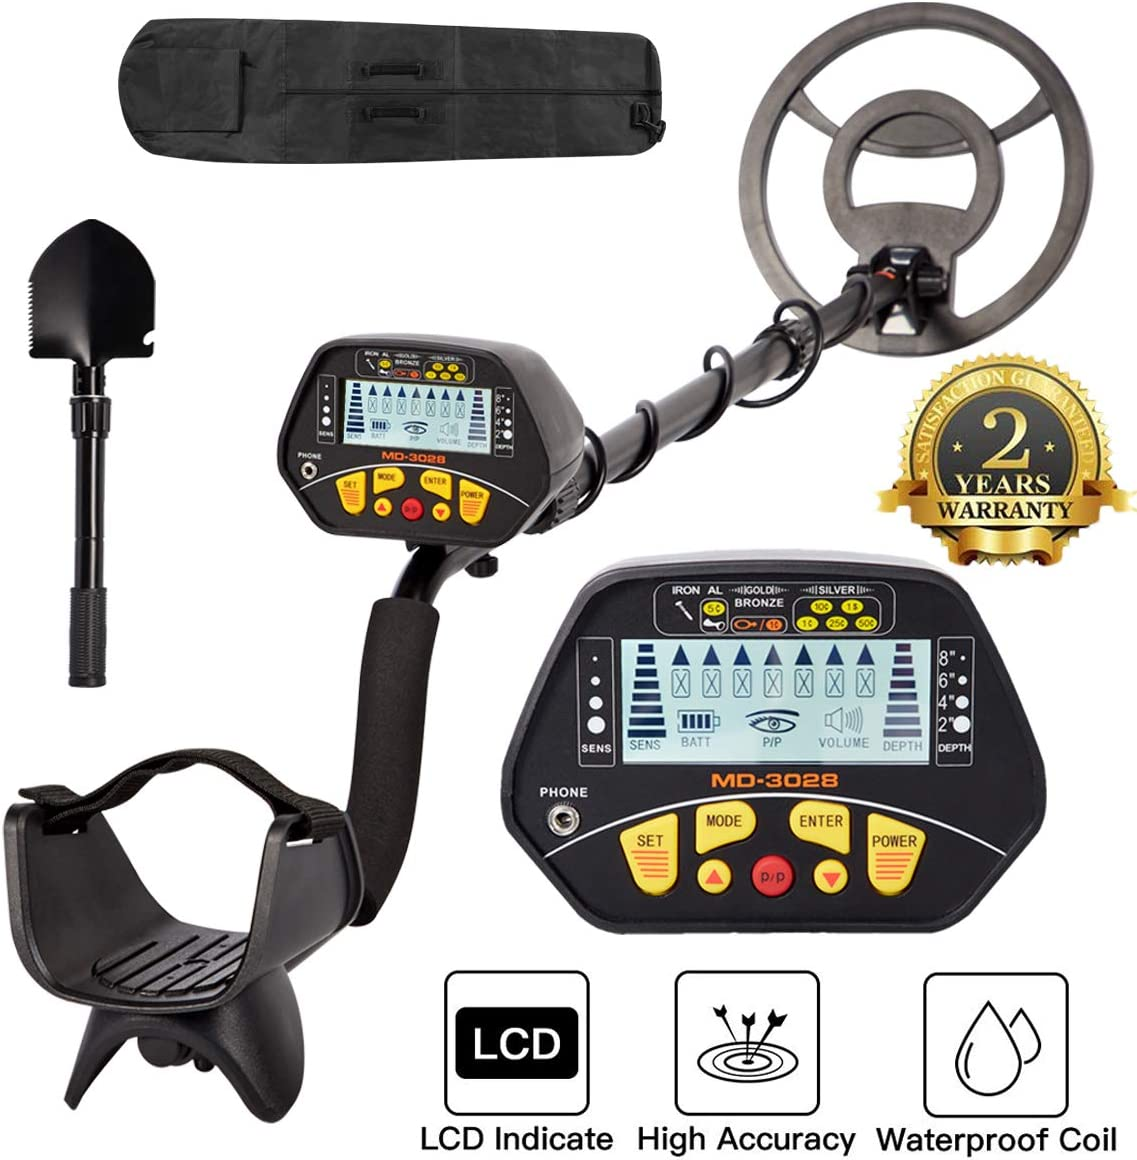 Dnyker Metal Detector High Accuracy Adjustable Waterproof LCD Display Gold Metal Detector